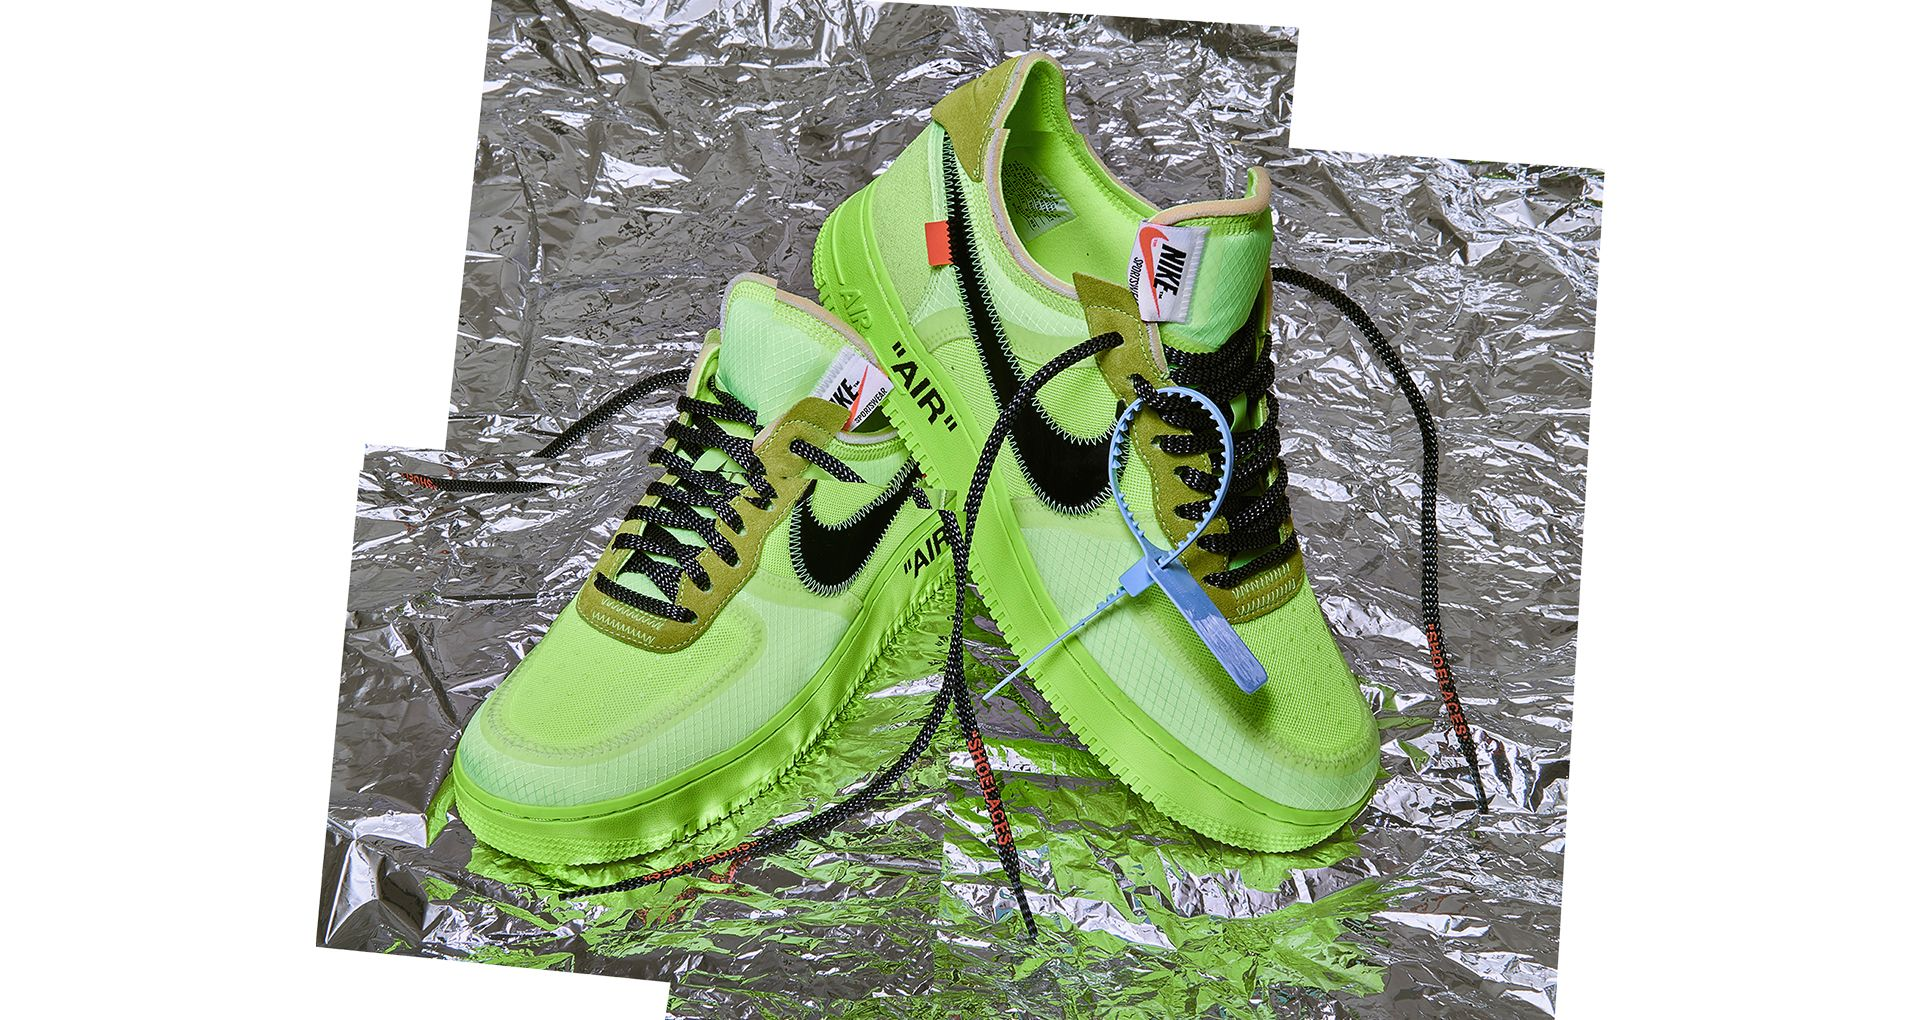 07-nike-air-force-1-low-off-white-volt-ao4606-700